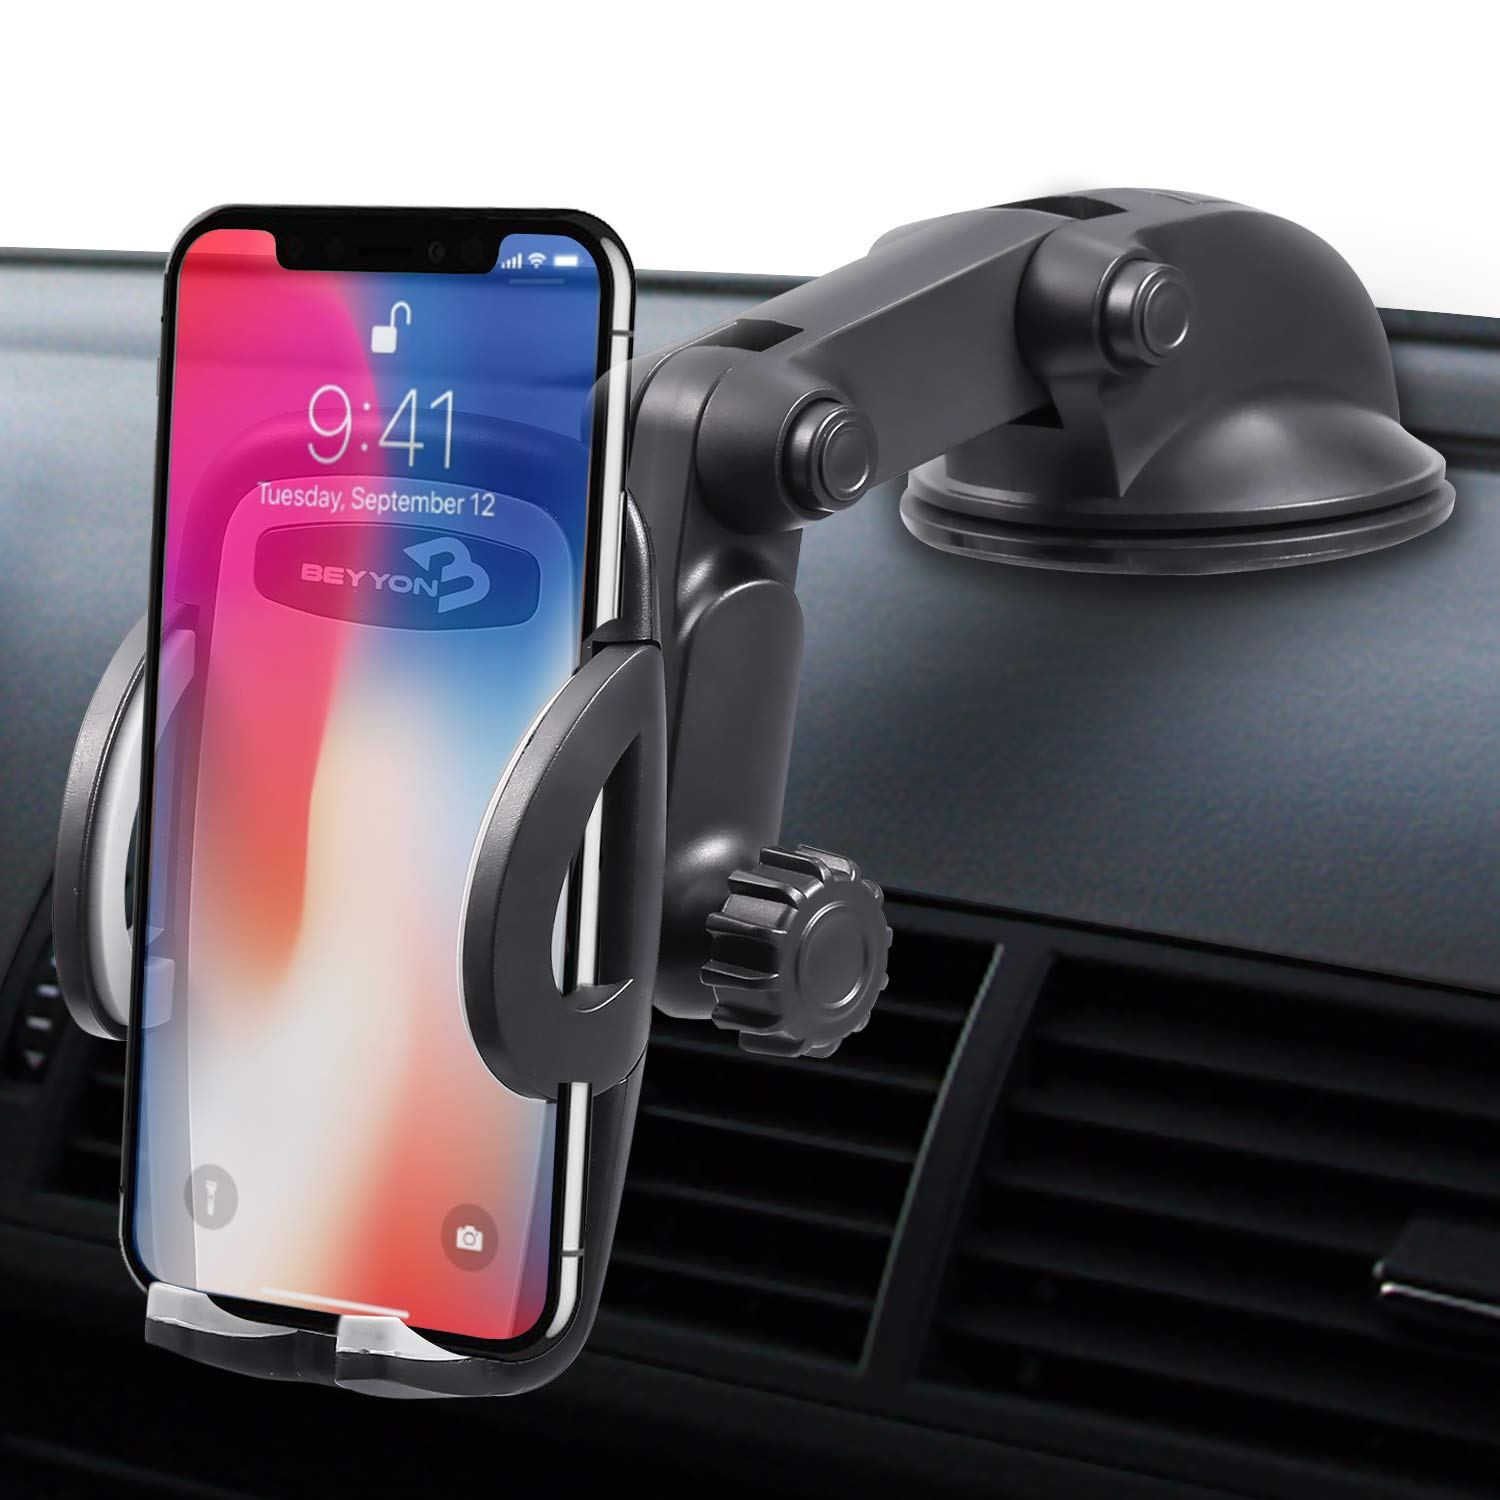 Beyyon Car Phone Mount Dashboard Windshield Cell Phone Holder Cradle for Car with Sticky Suction & Easy One-Touch for iPhone Xs/XS MAX/XR/X/8/8Plus/7/7Plus, Galaxy S8/9/10, Huawei and More - Black